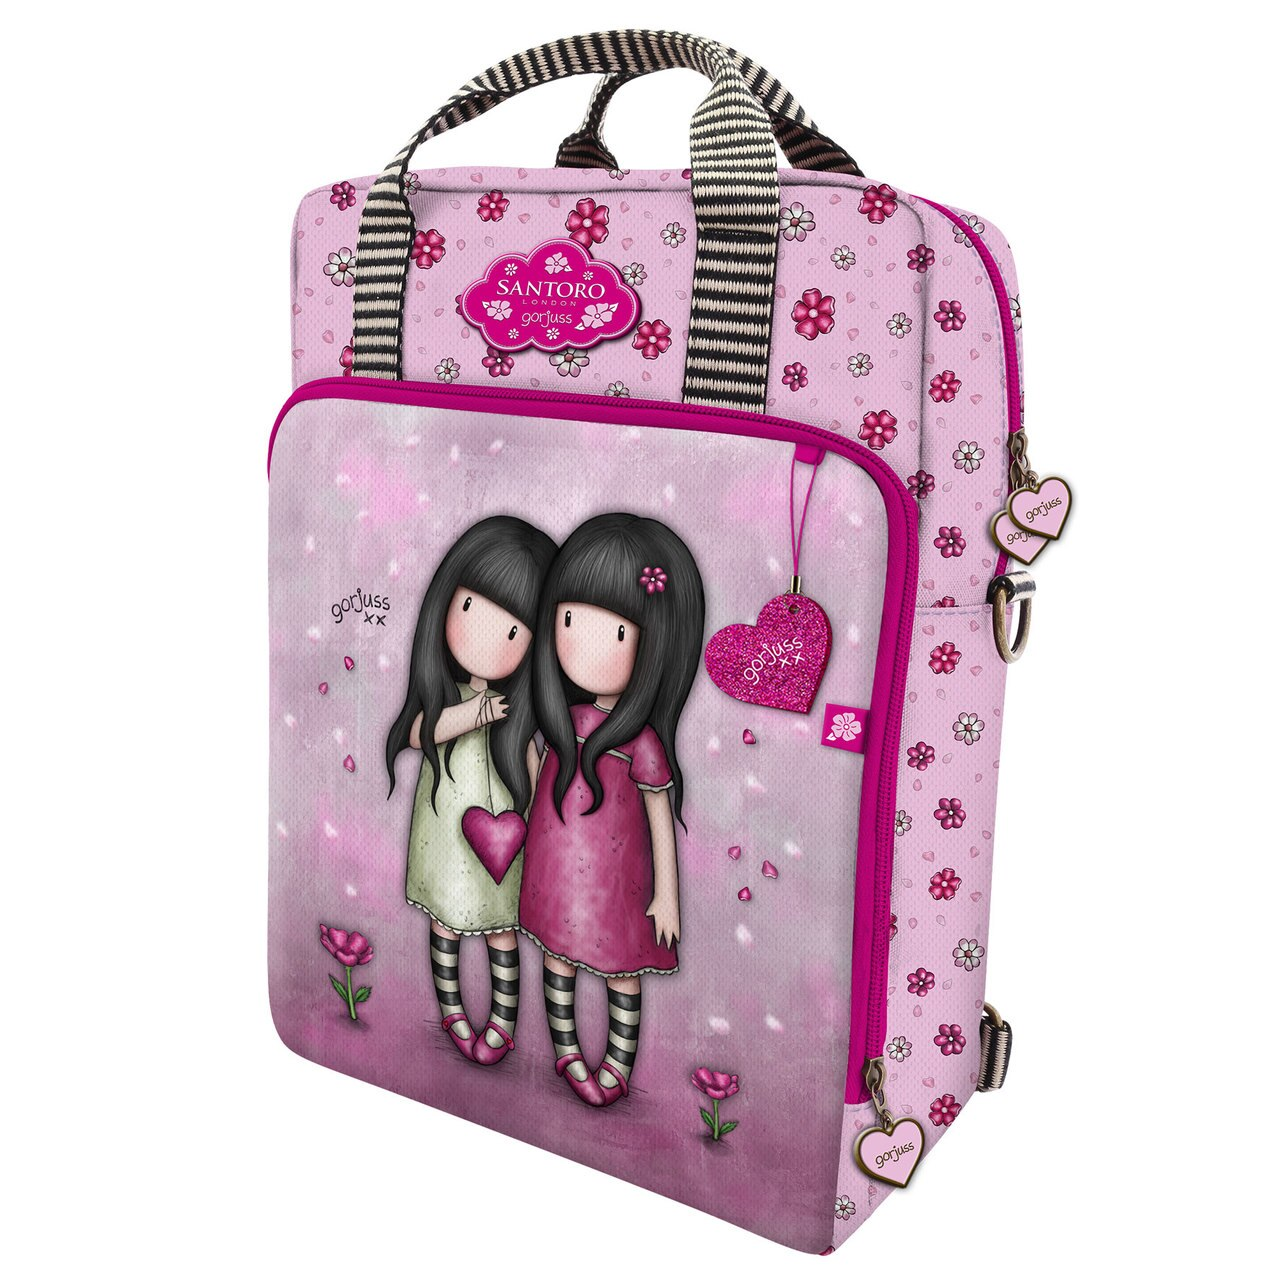 Santoro roz 2in1 rucsac Gorjuss You Can Have Mine